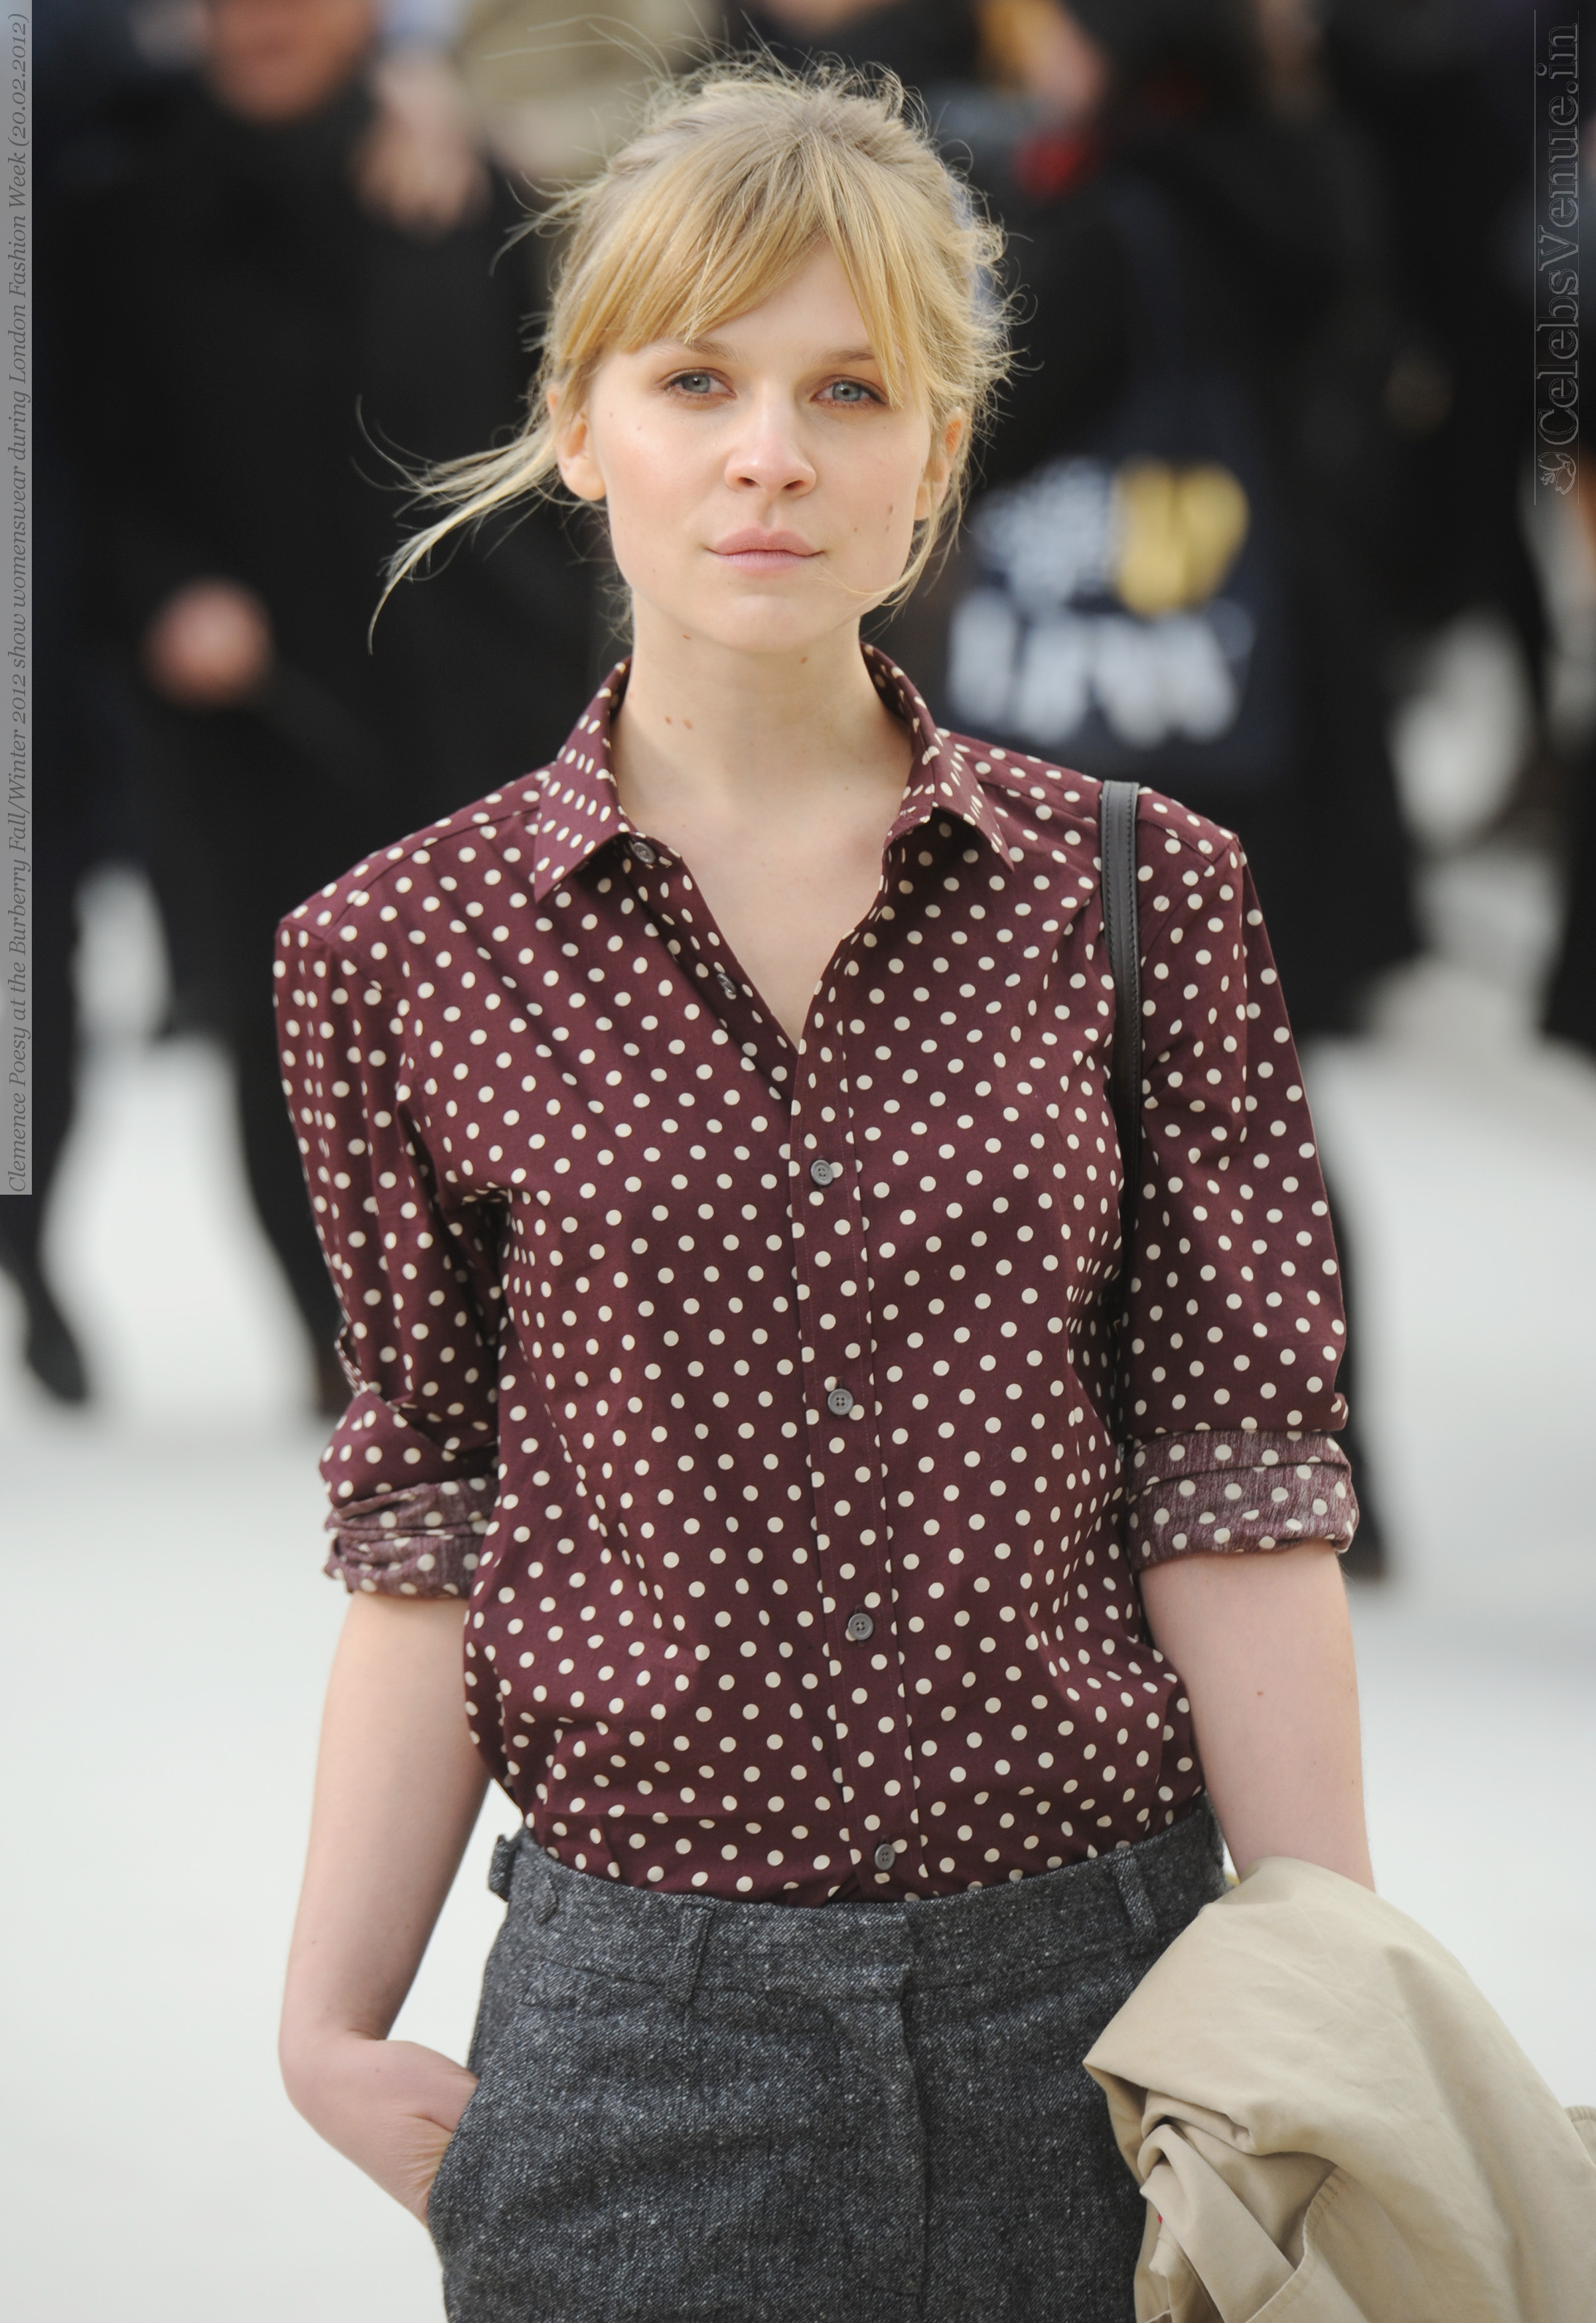 Clemence Poesy at the Burberry Fall/Winter 2012 show womenswear during London Fashion Week (20.02.2012)